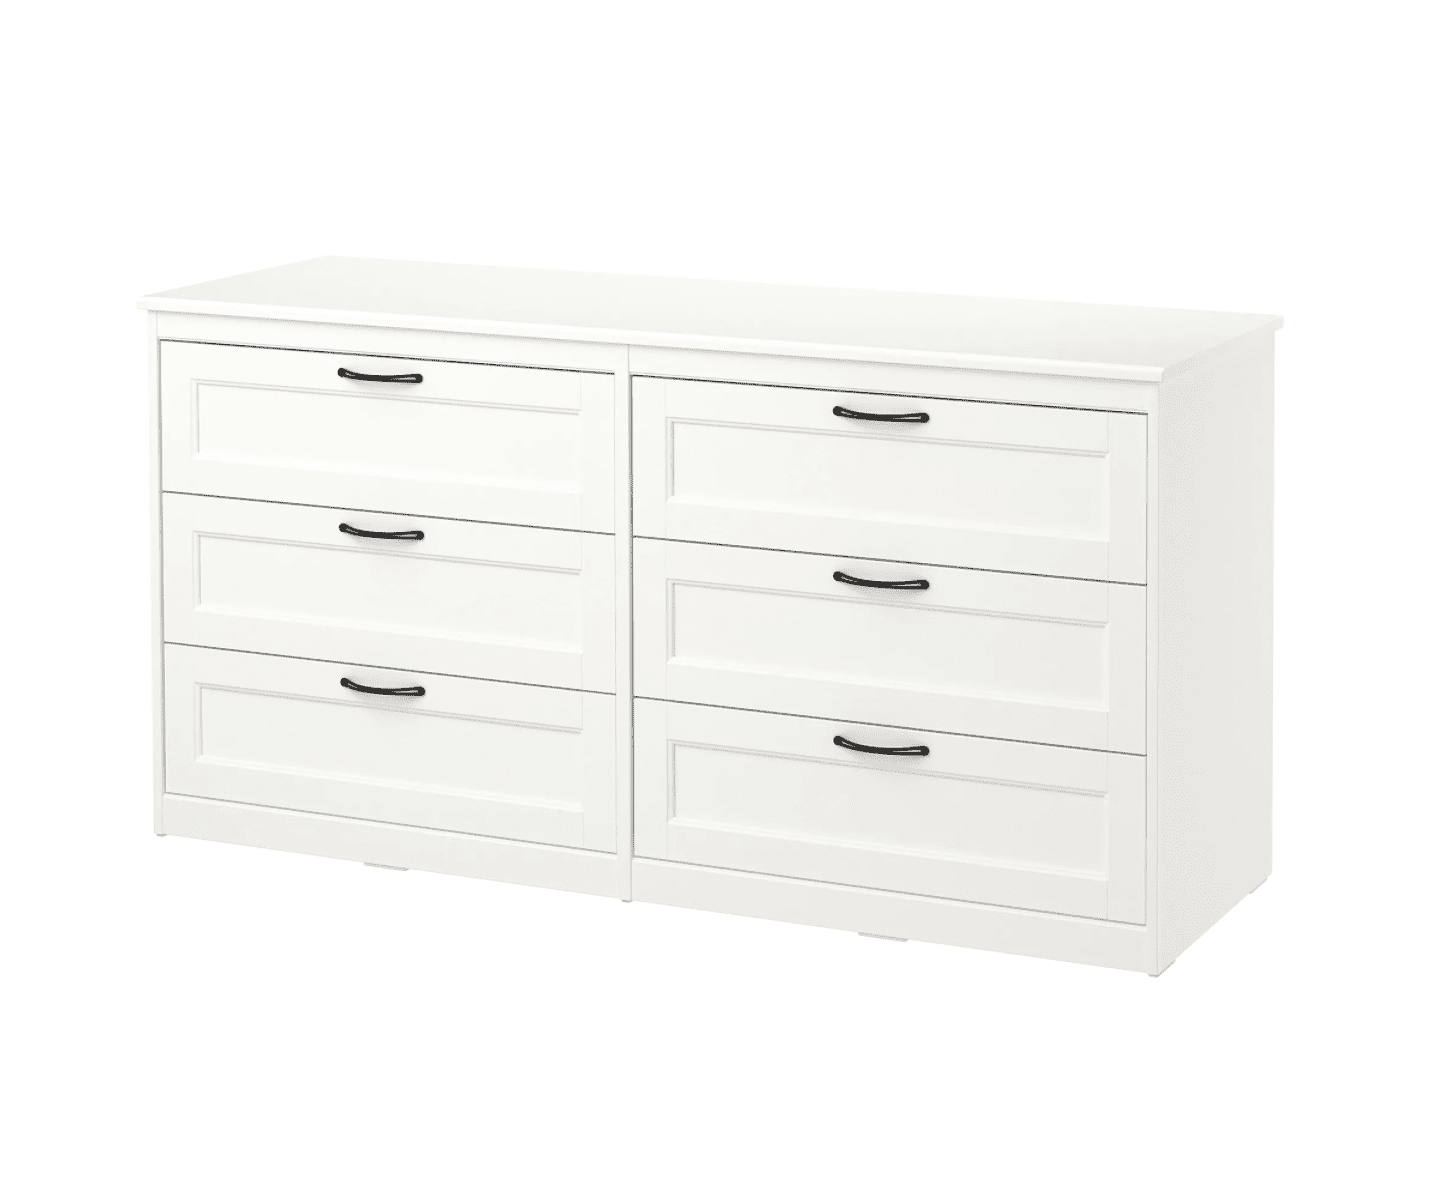 A white, 6-drawer dresser, currently for sale at IKEA